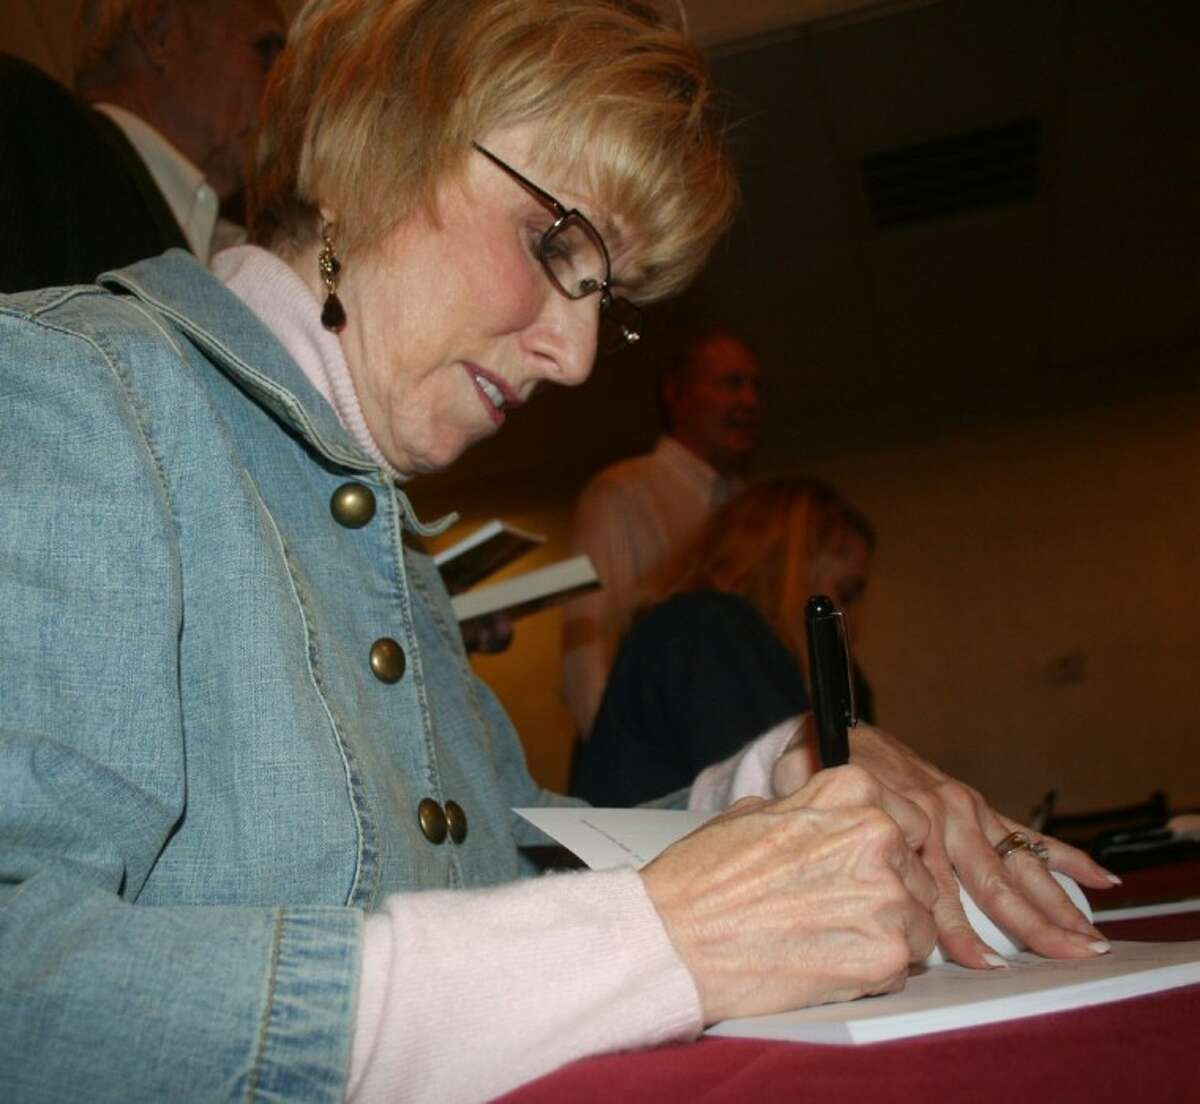 State Rep. Debbie Riddle (R-Dist. 150) signs a copy of her book, titled